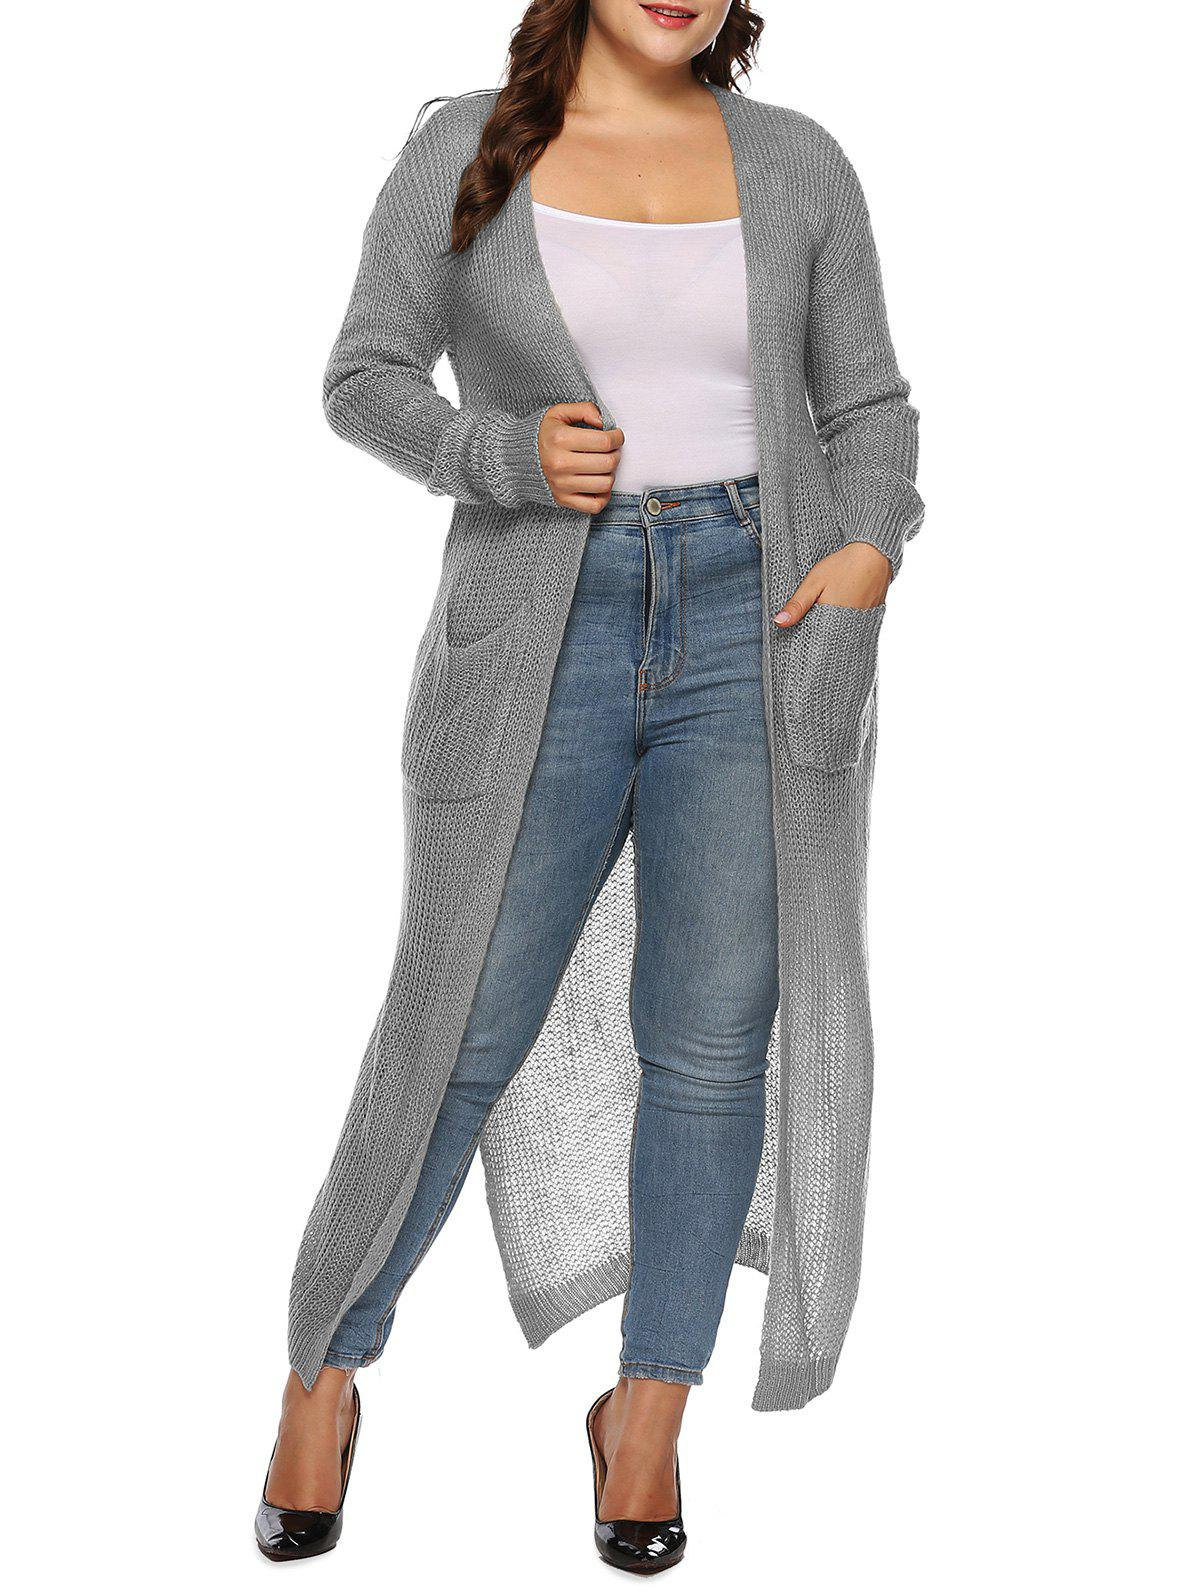 Ouvrez Placket Double Pocket Slit Plus Size Cardigan Longline - Oie grise 1X